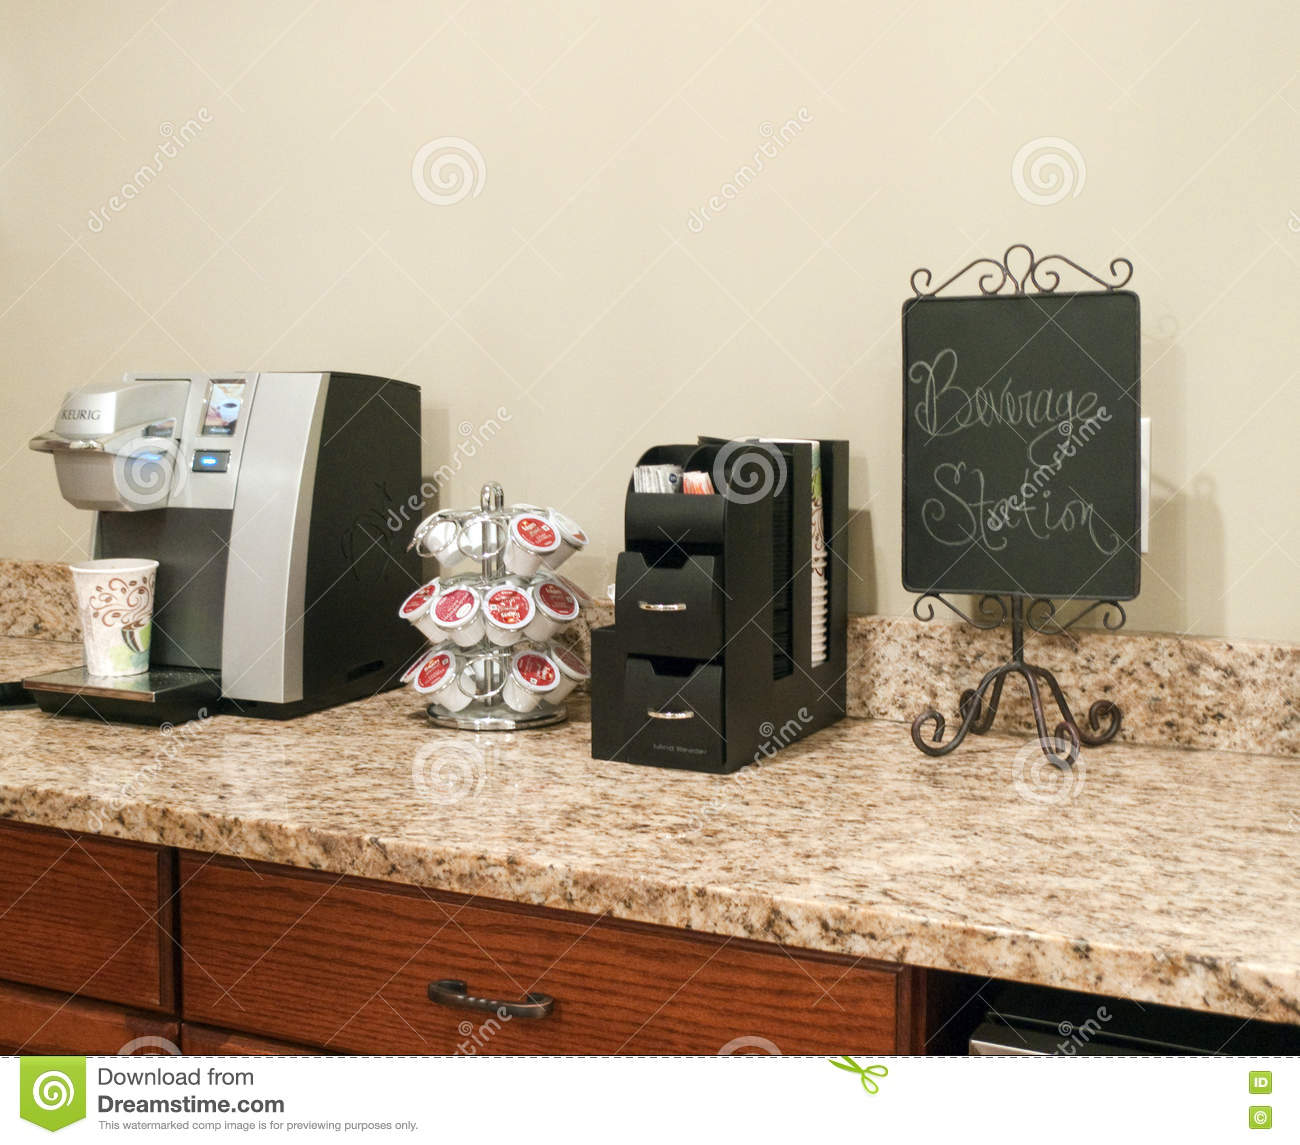 Keurig Coffee Maker With Single Serve Packets Editorial Photo